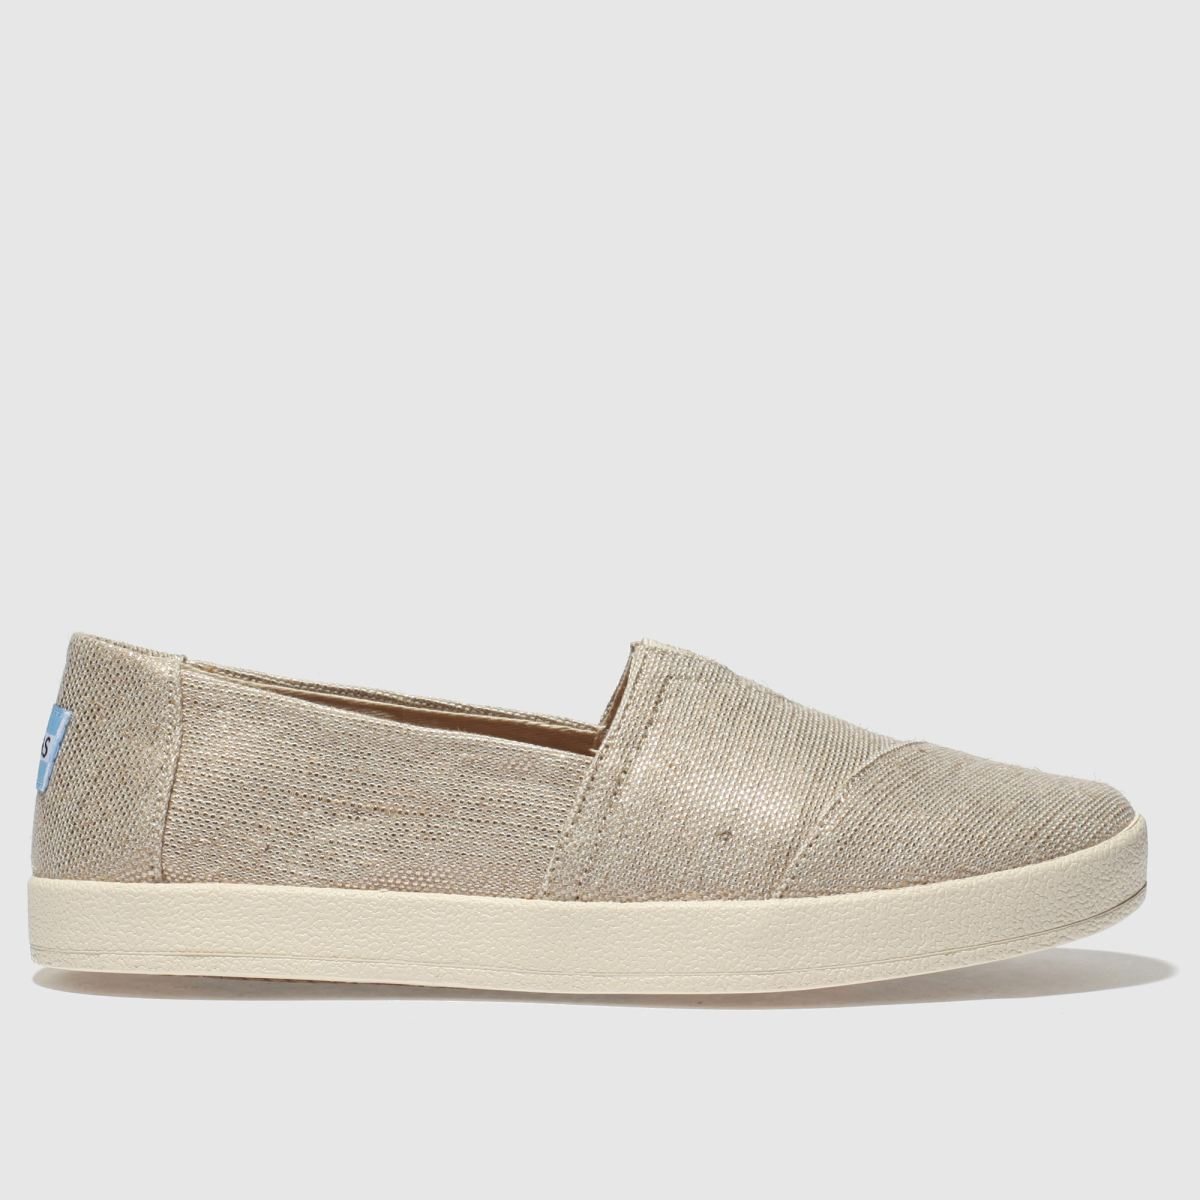 Toms Gold Avalon Flat Shoes